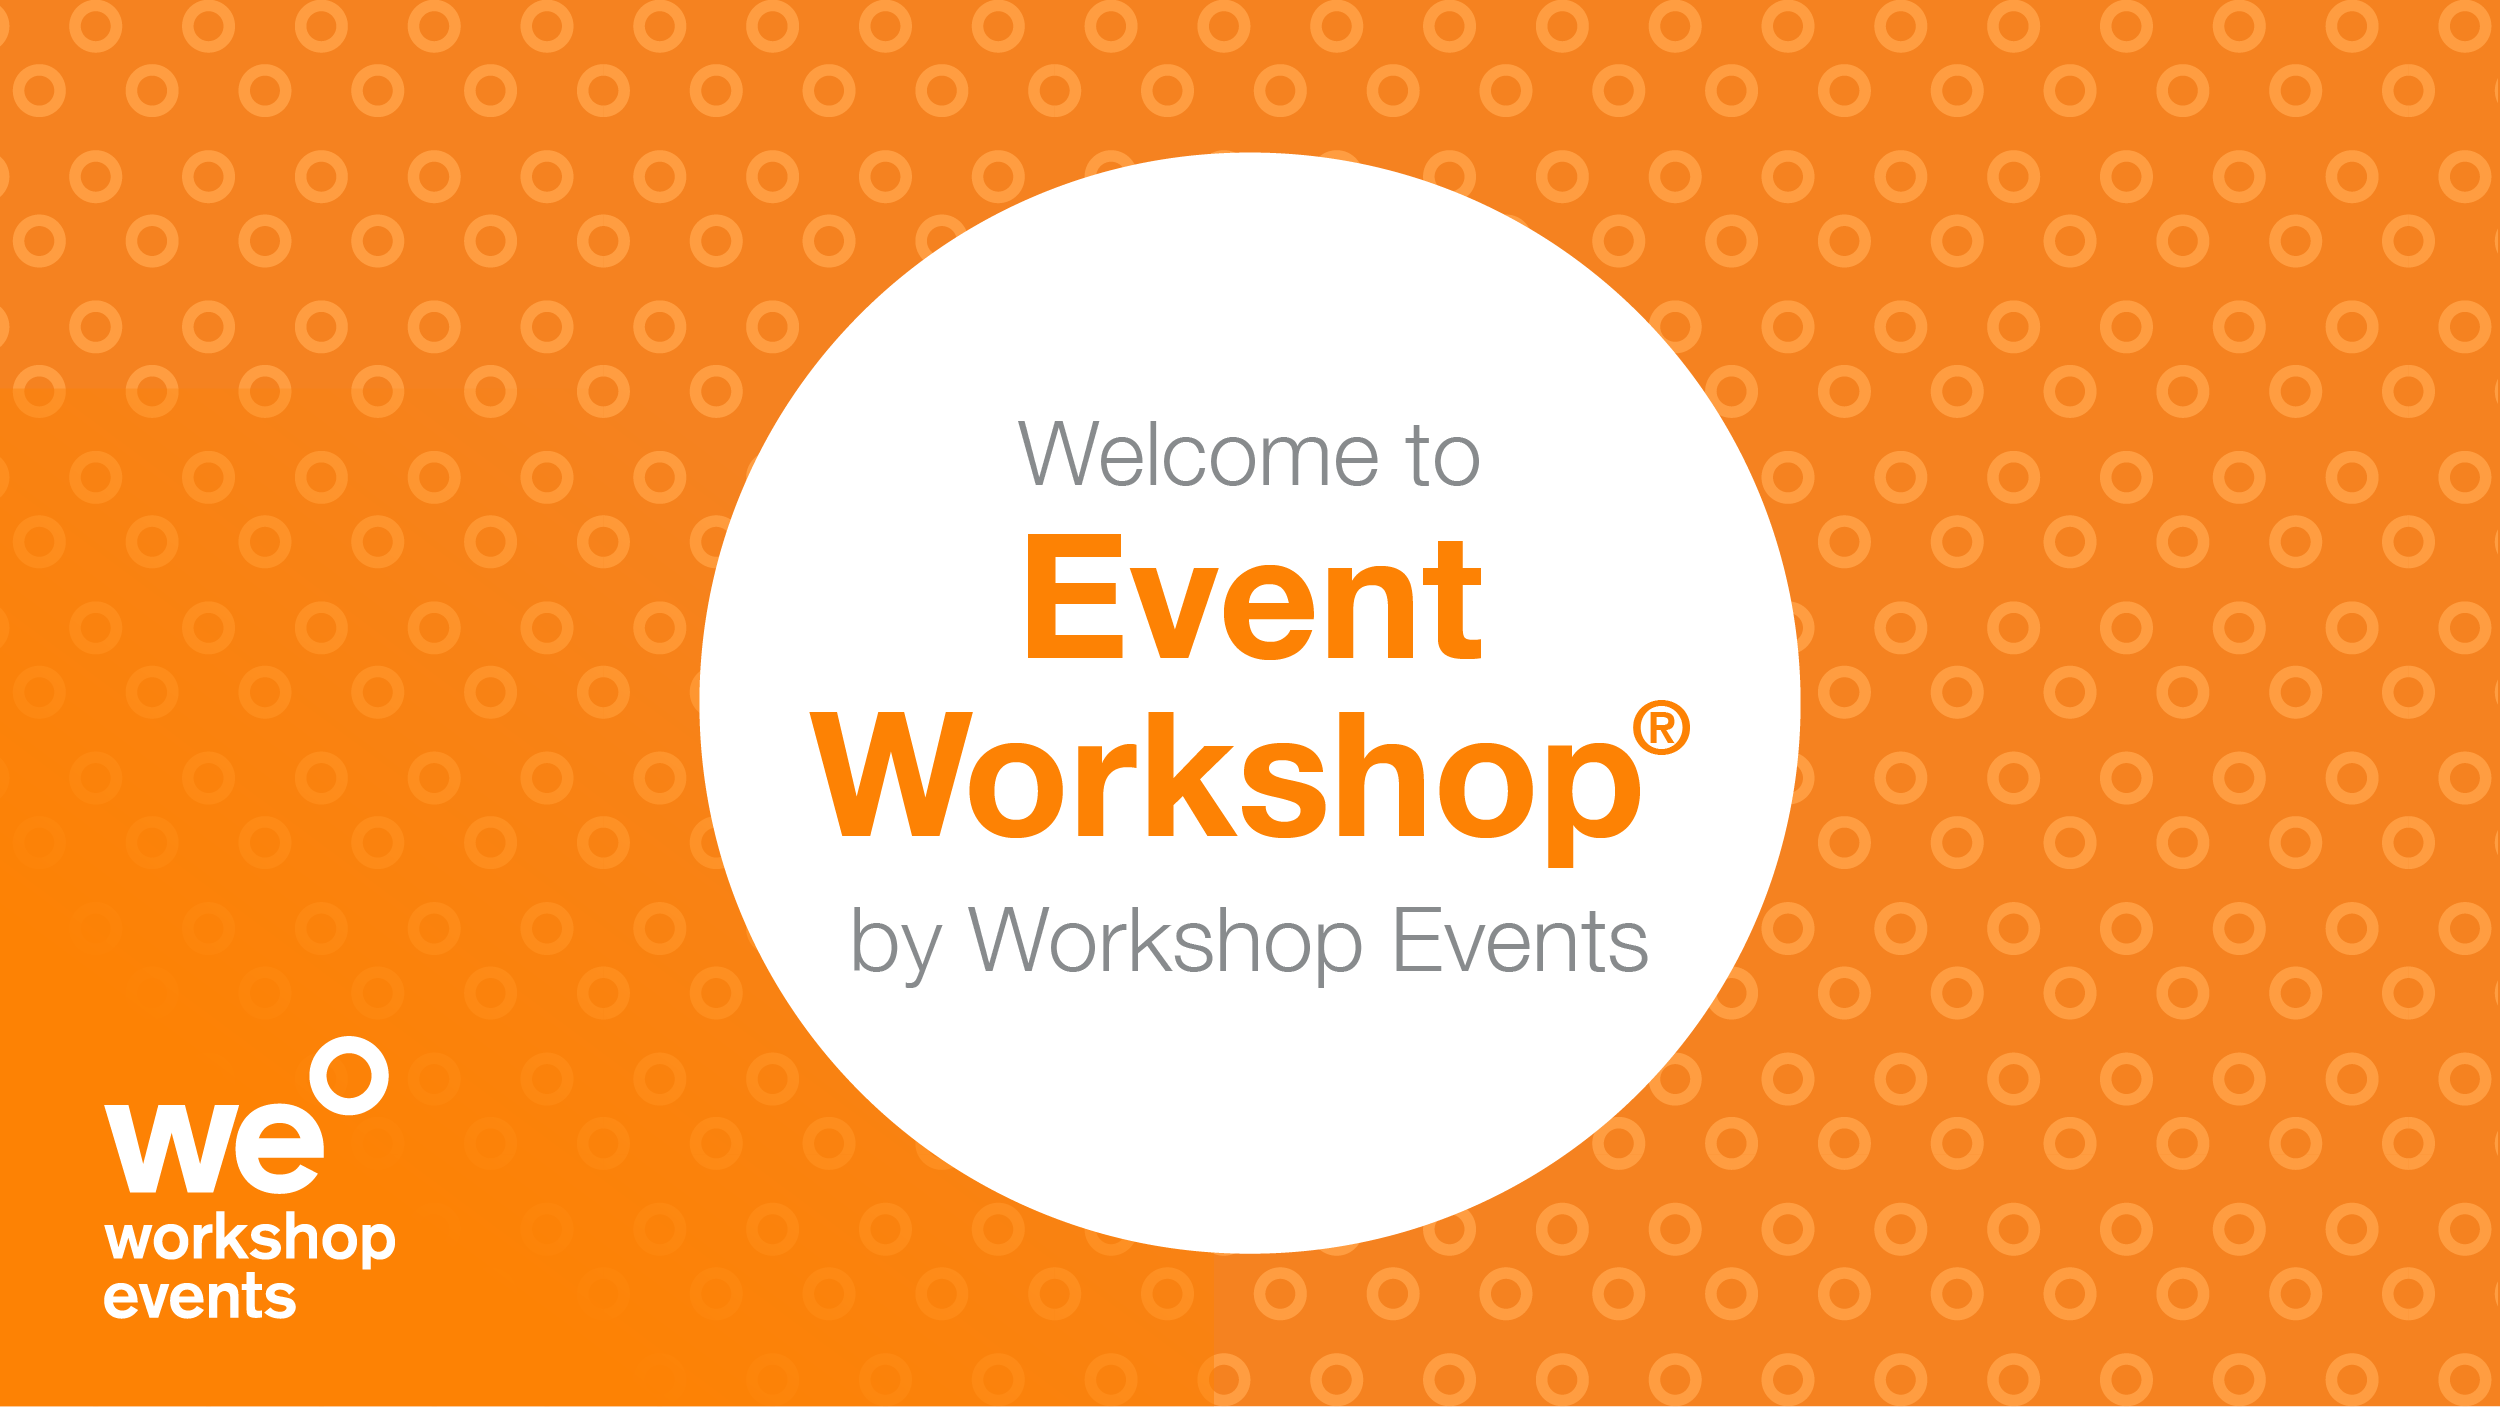 Workshop Events_Landpagetile.png